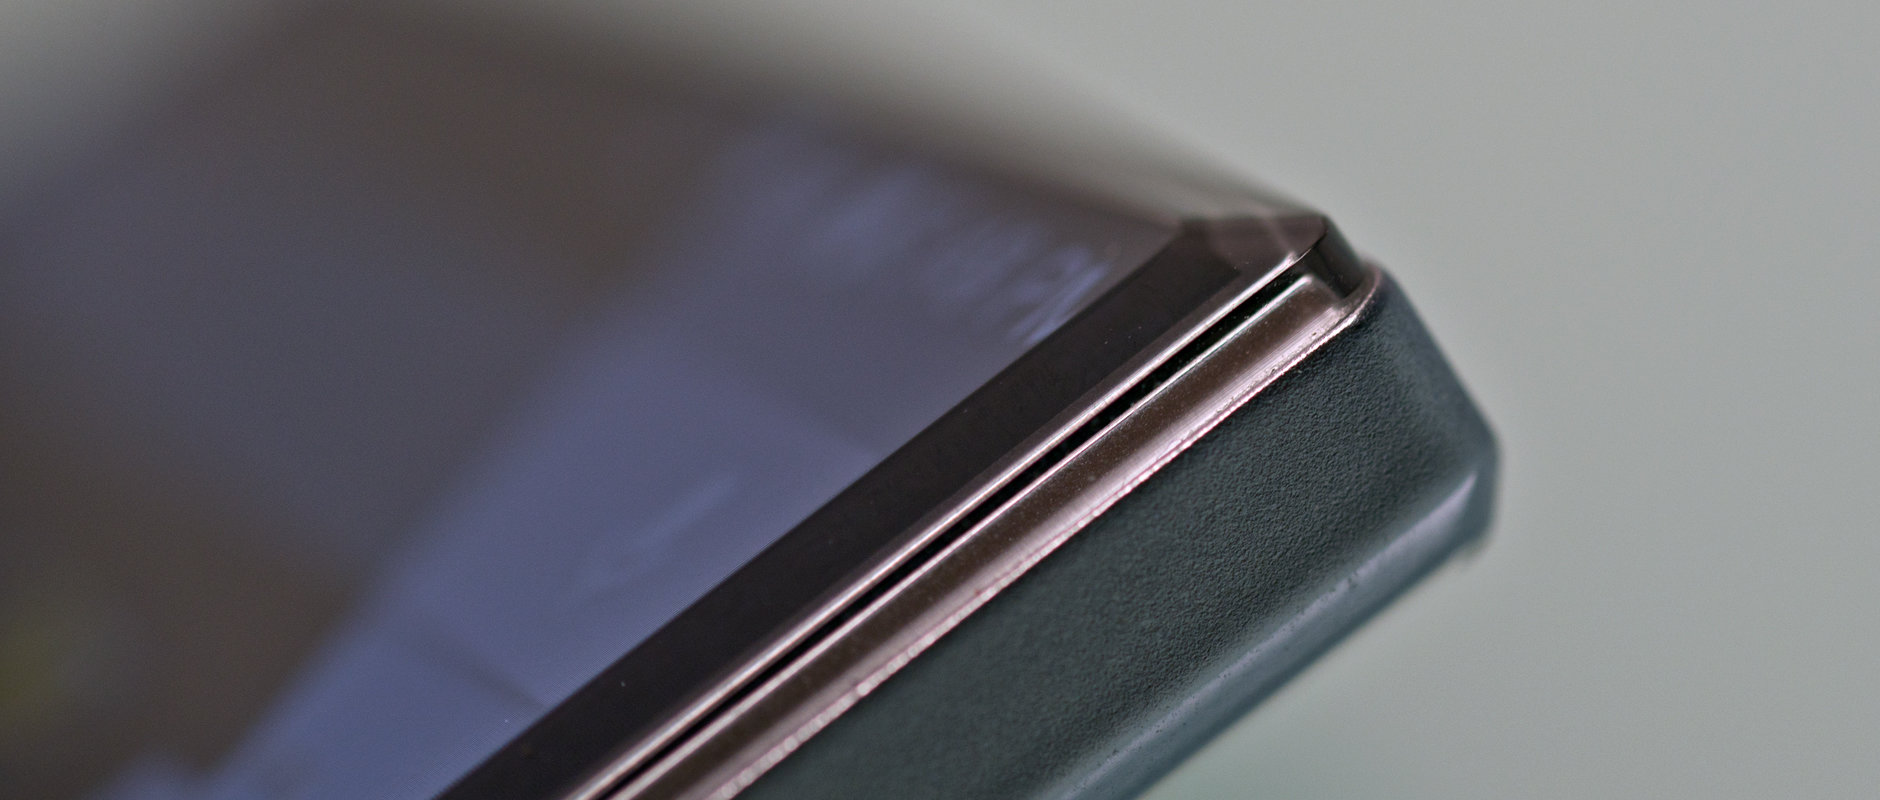 A photo of the Sharp Aquos Crystal's screen chamfering.